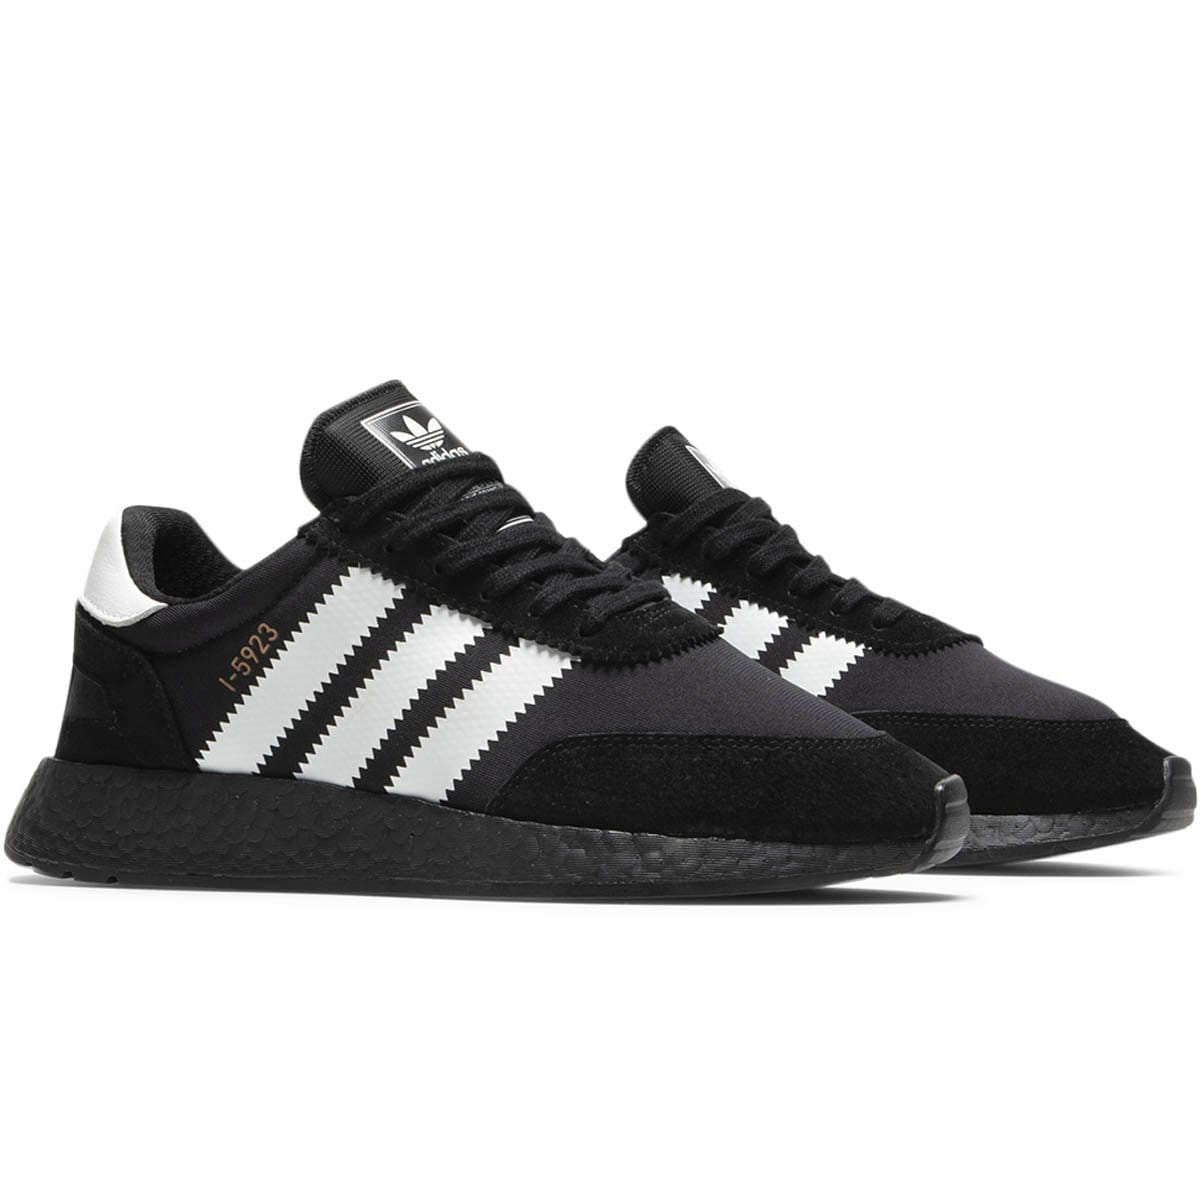 adidas Shoes CBLACK,FTWWHT,COPPMT / 8 INIKI RUNNER